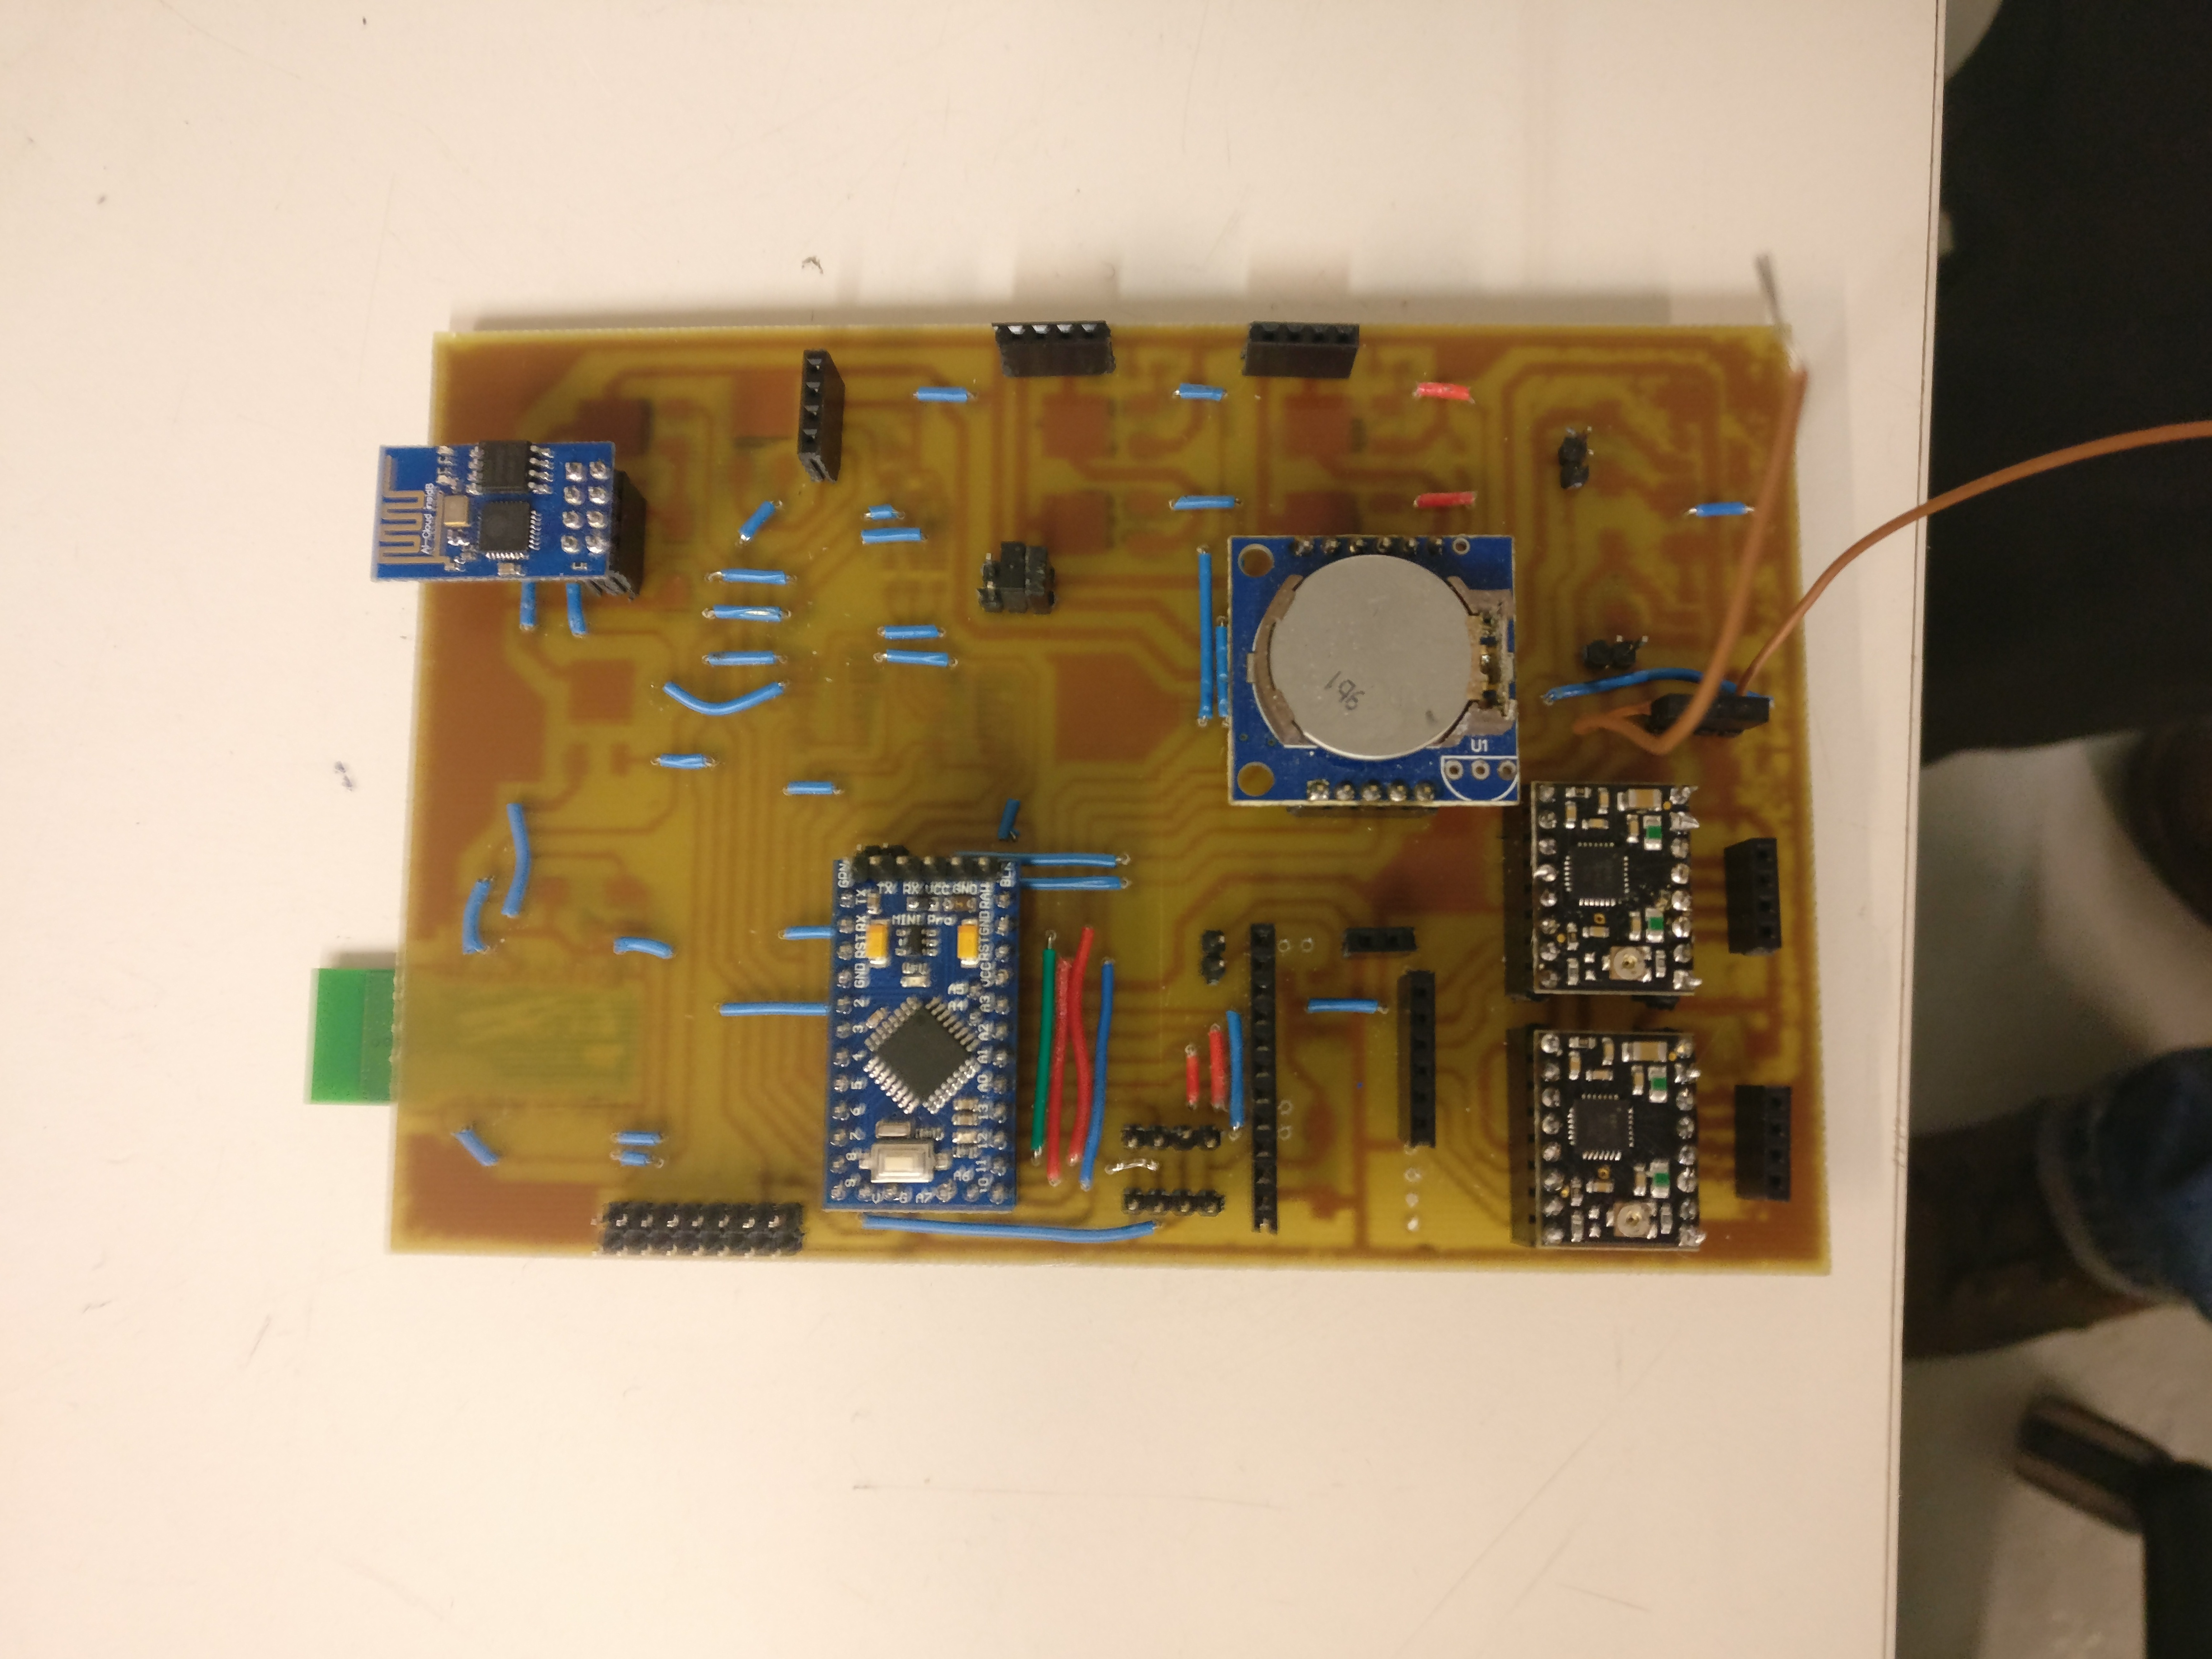 Automatic Lawnmower Mechatronics Exercises Aalto University Wiki High Res Jpeg Of A Circuit Board With Binary Codes As The Background File Img 20170405 161342